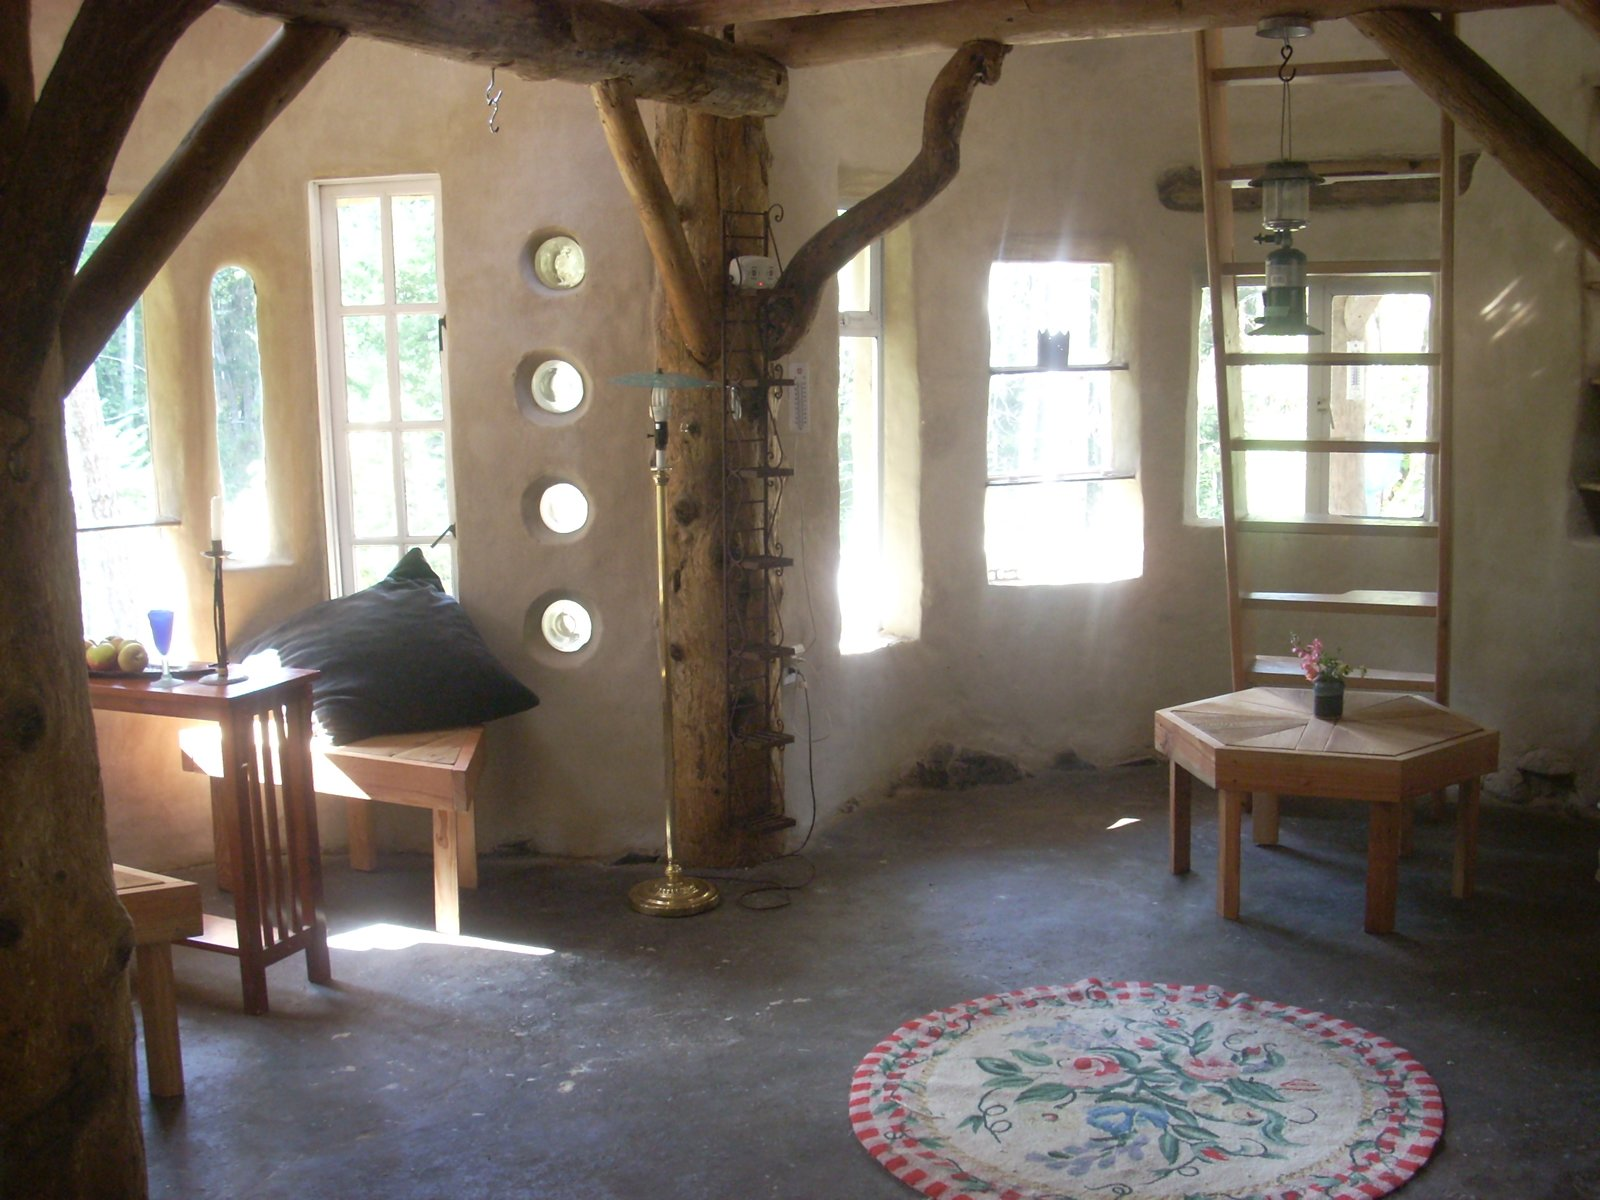 Here's the interior of the cob house. Photo courtesy of Jen Gobby.  Photo 3 of 5 in Mud Mavens: Mud Girls Founder Jen Gobby